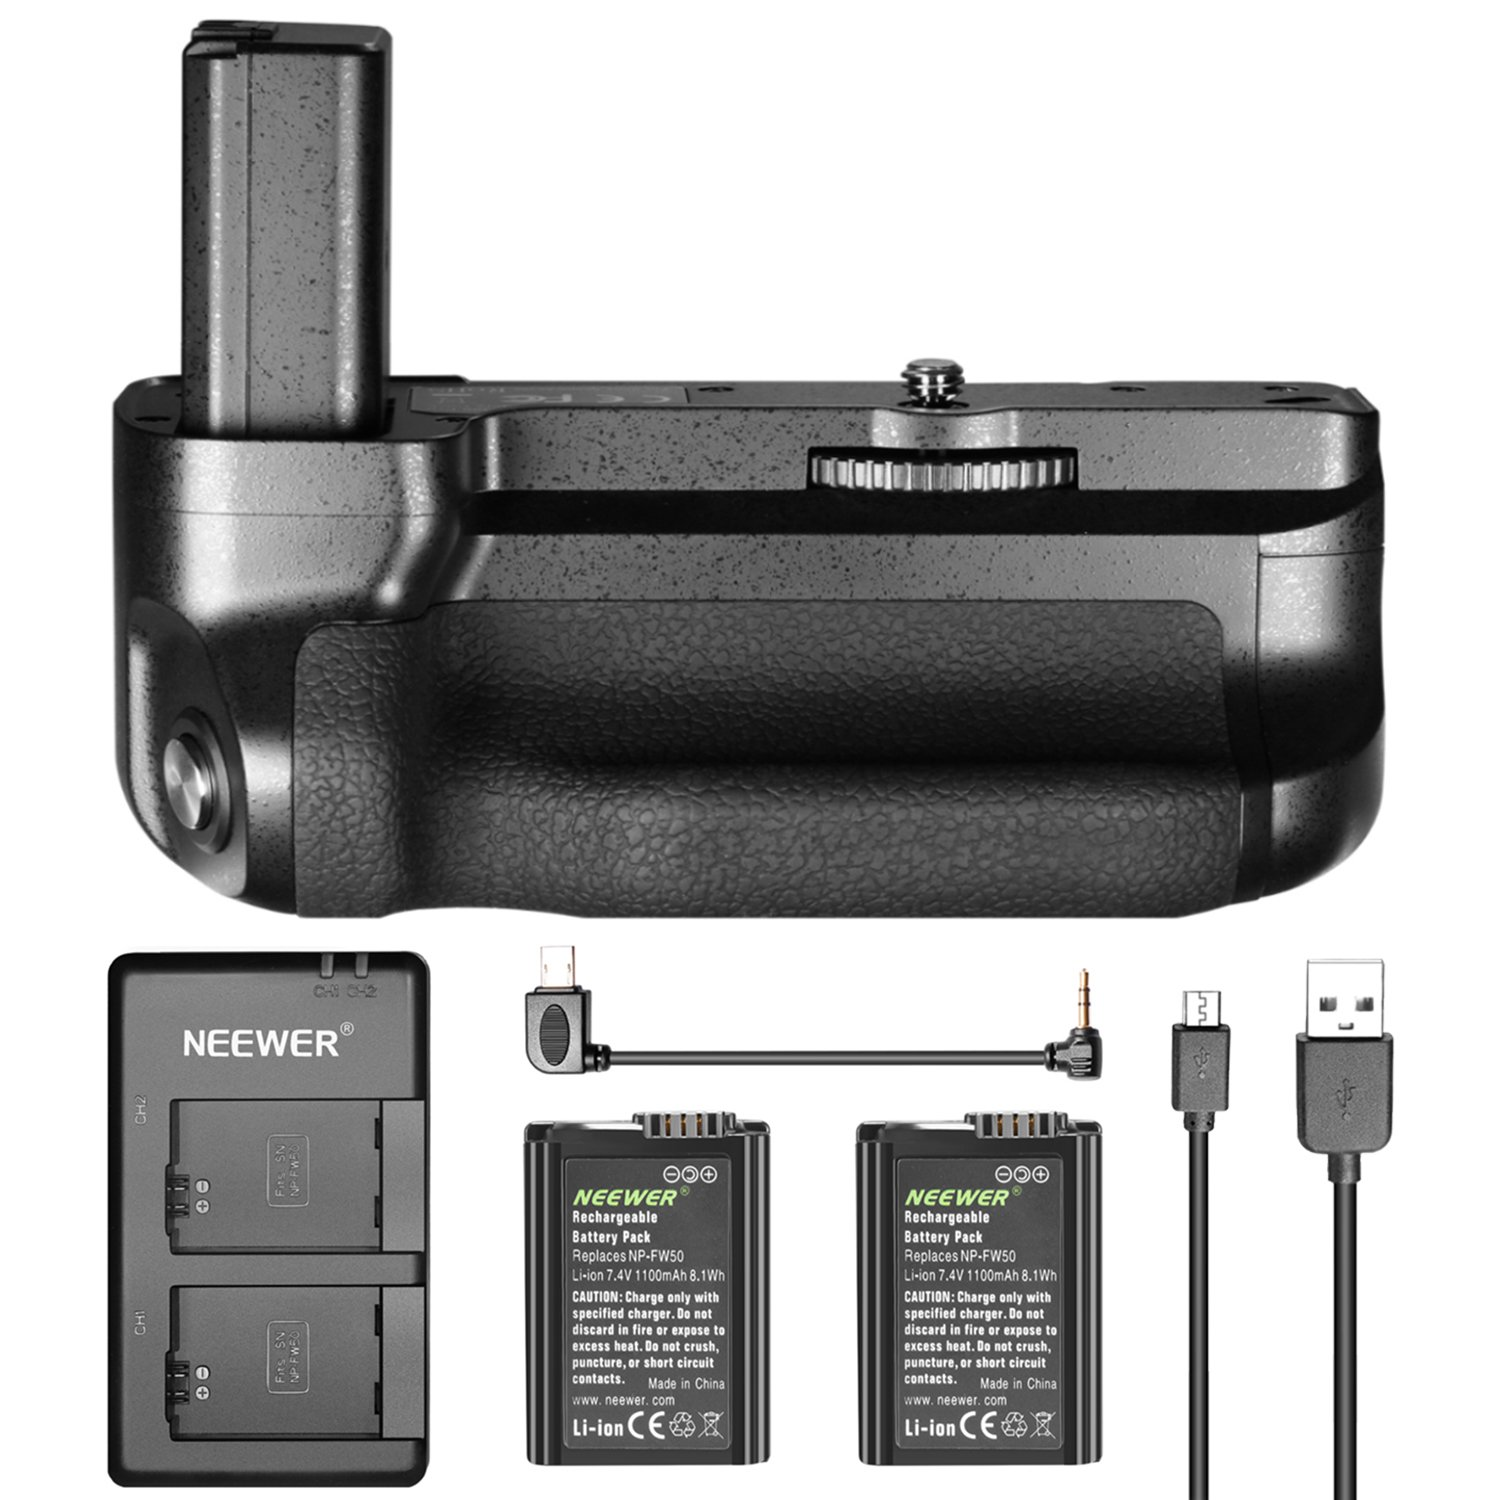 Neewer Pro Camera Vertical Battery Grip for Sony A6500 Mirrorless Camera, 2 Pieces 1100mAh Sony NP-FW50 Replacement Li-ion Battery and Micro USB Dual Charger